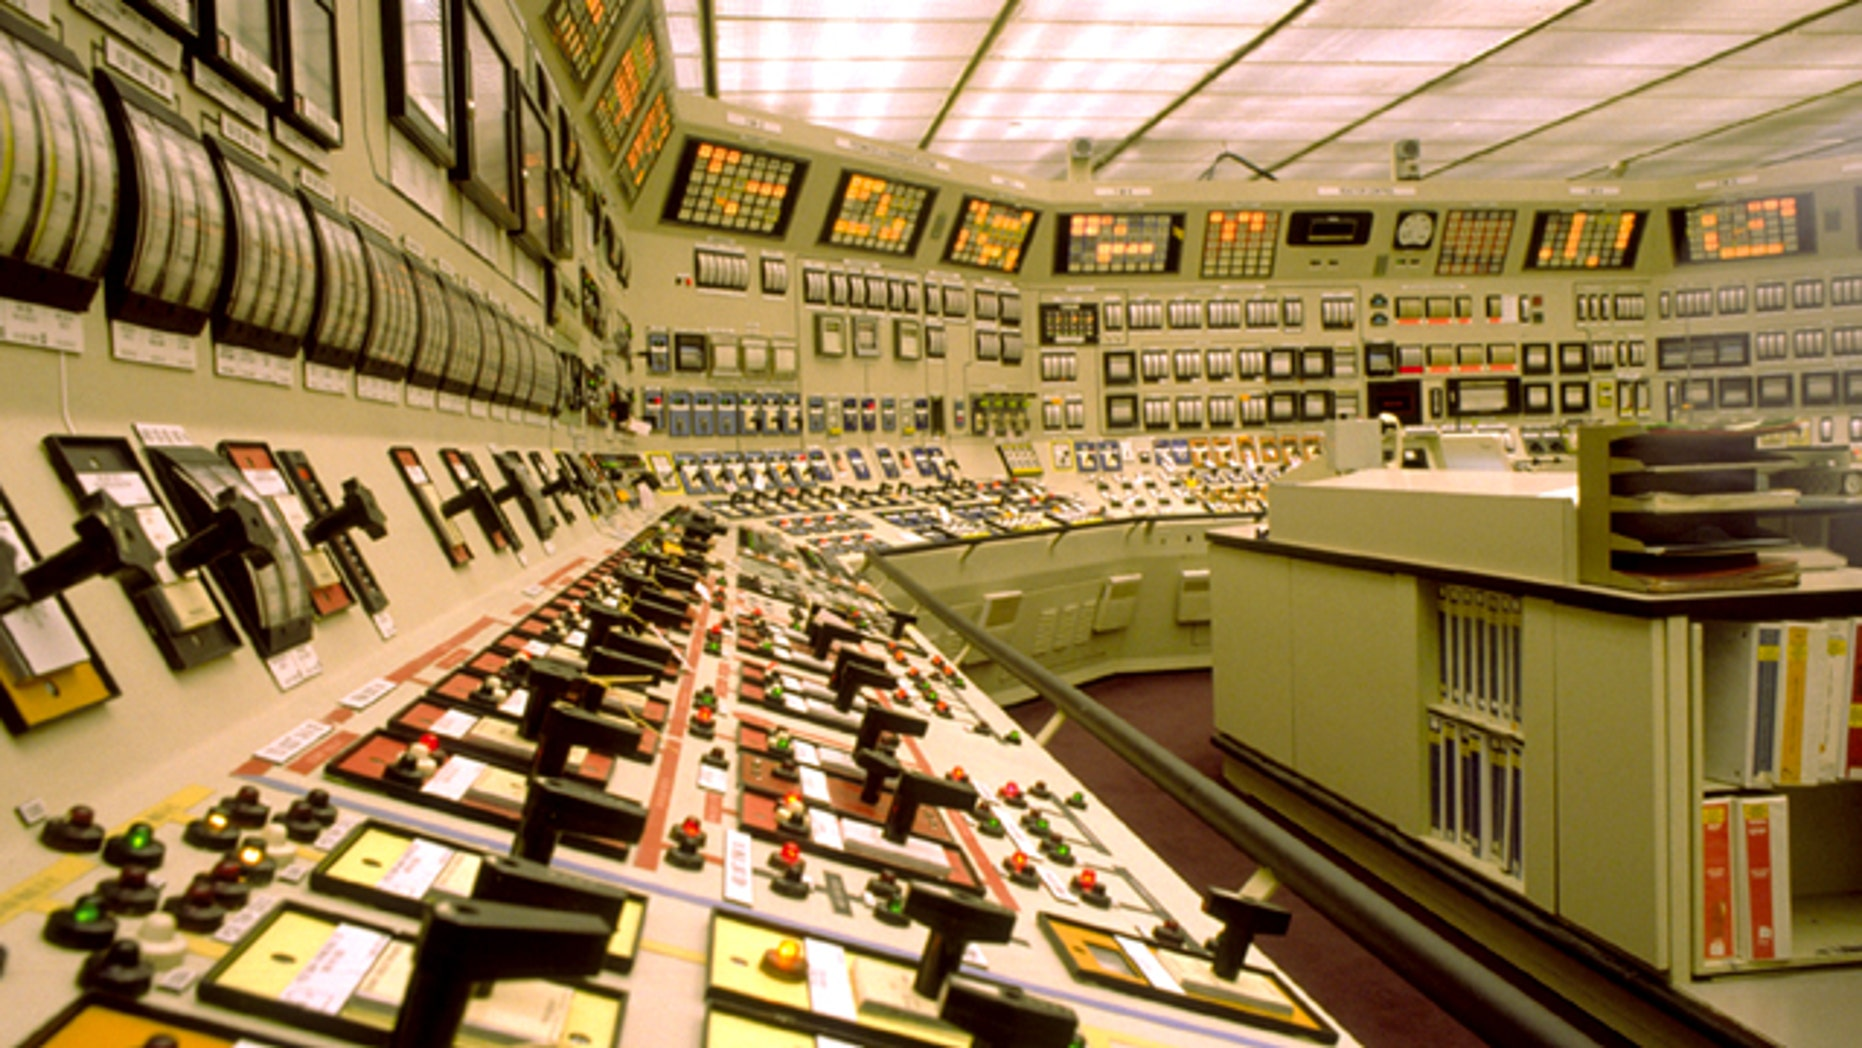 Control room at a nuclear power plant on the aging U.S. electric grid.